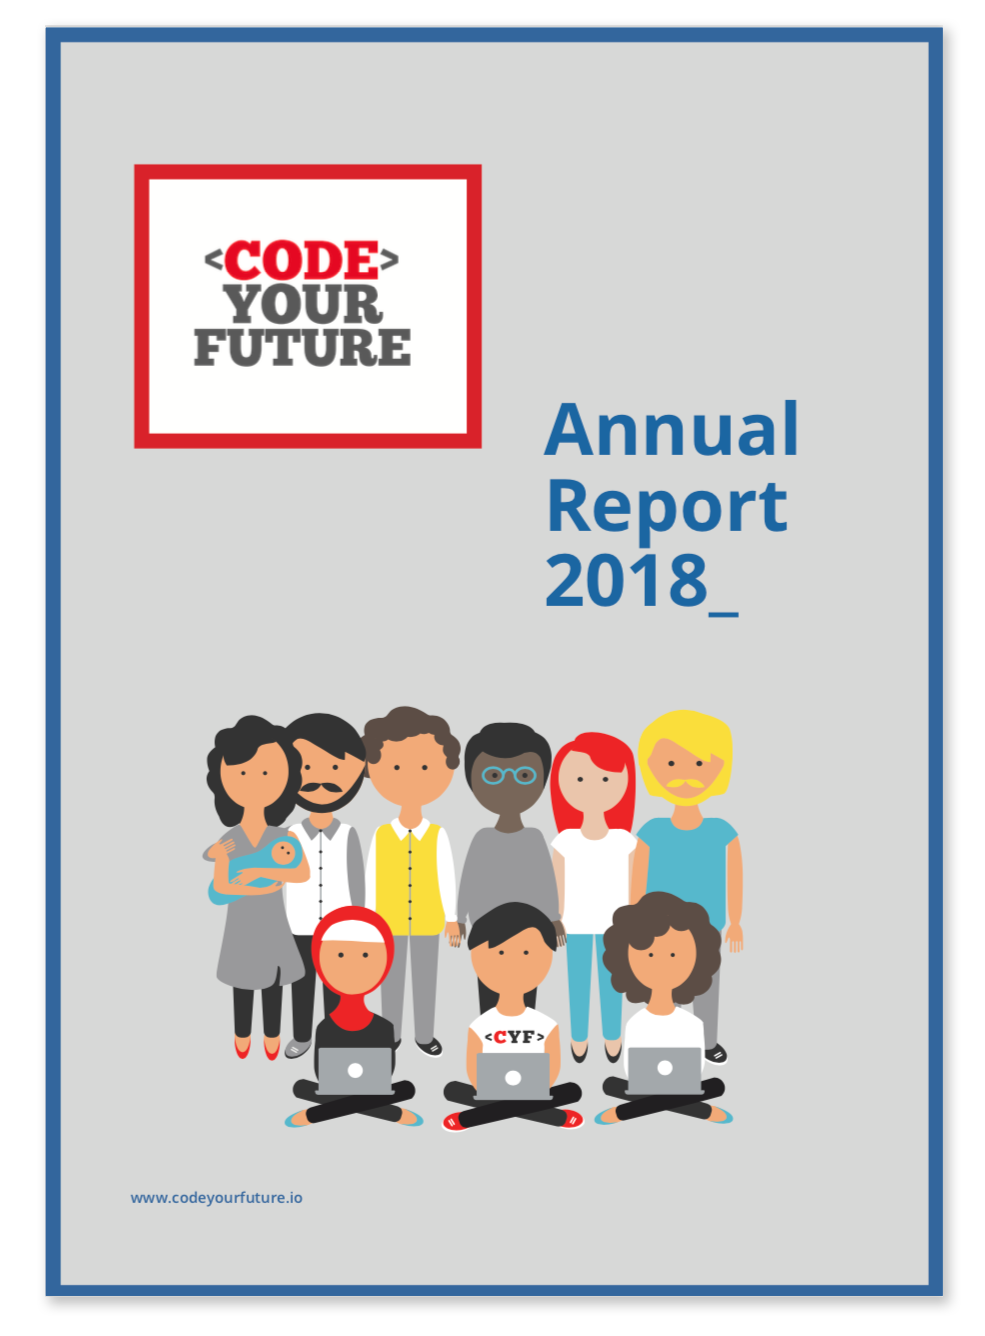 Link to download annual report